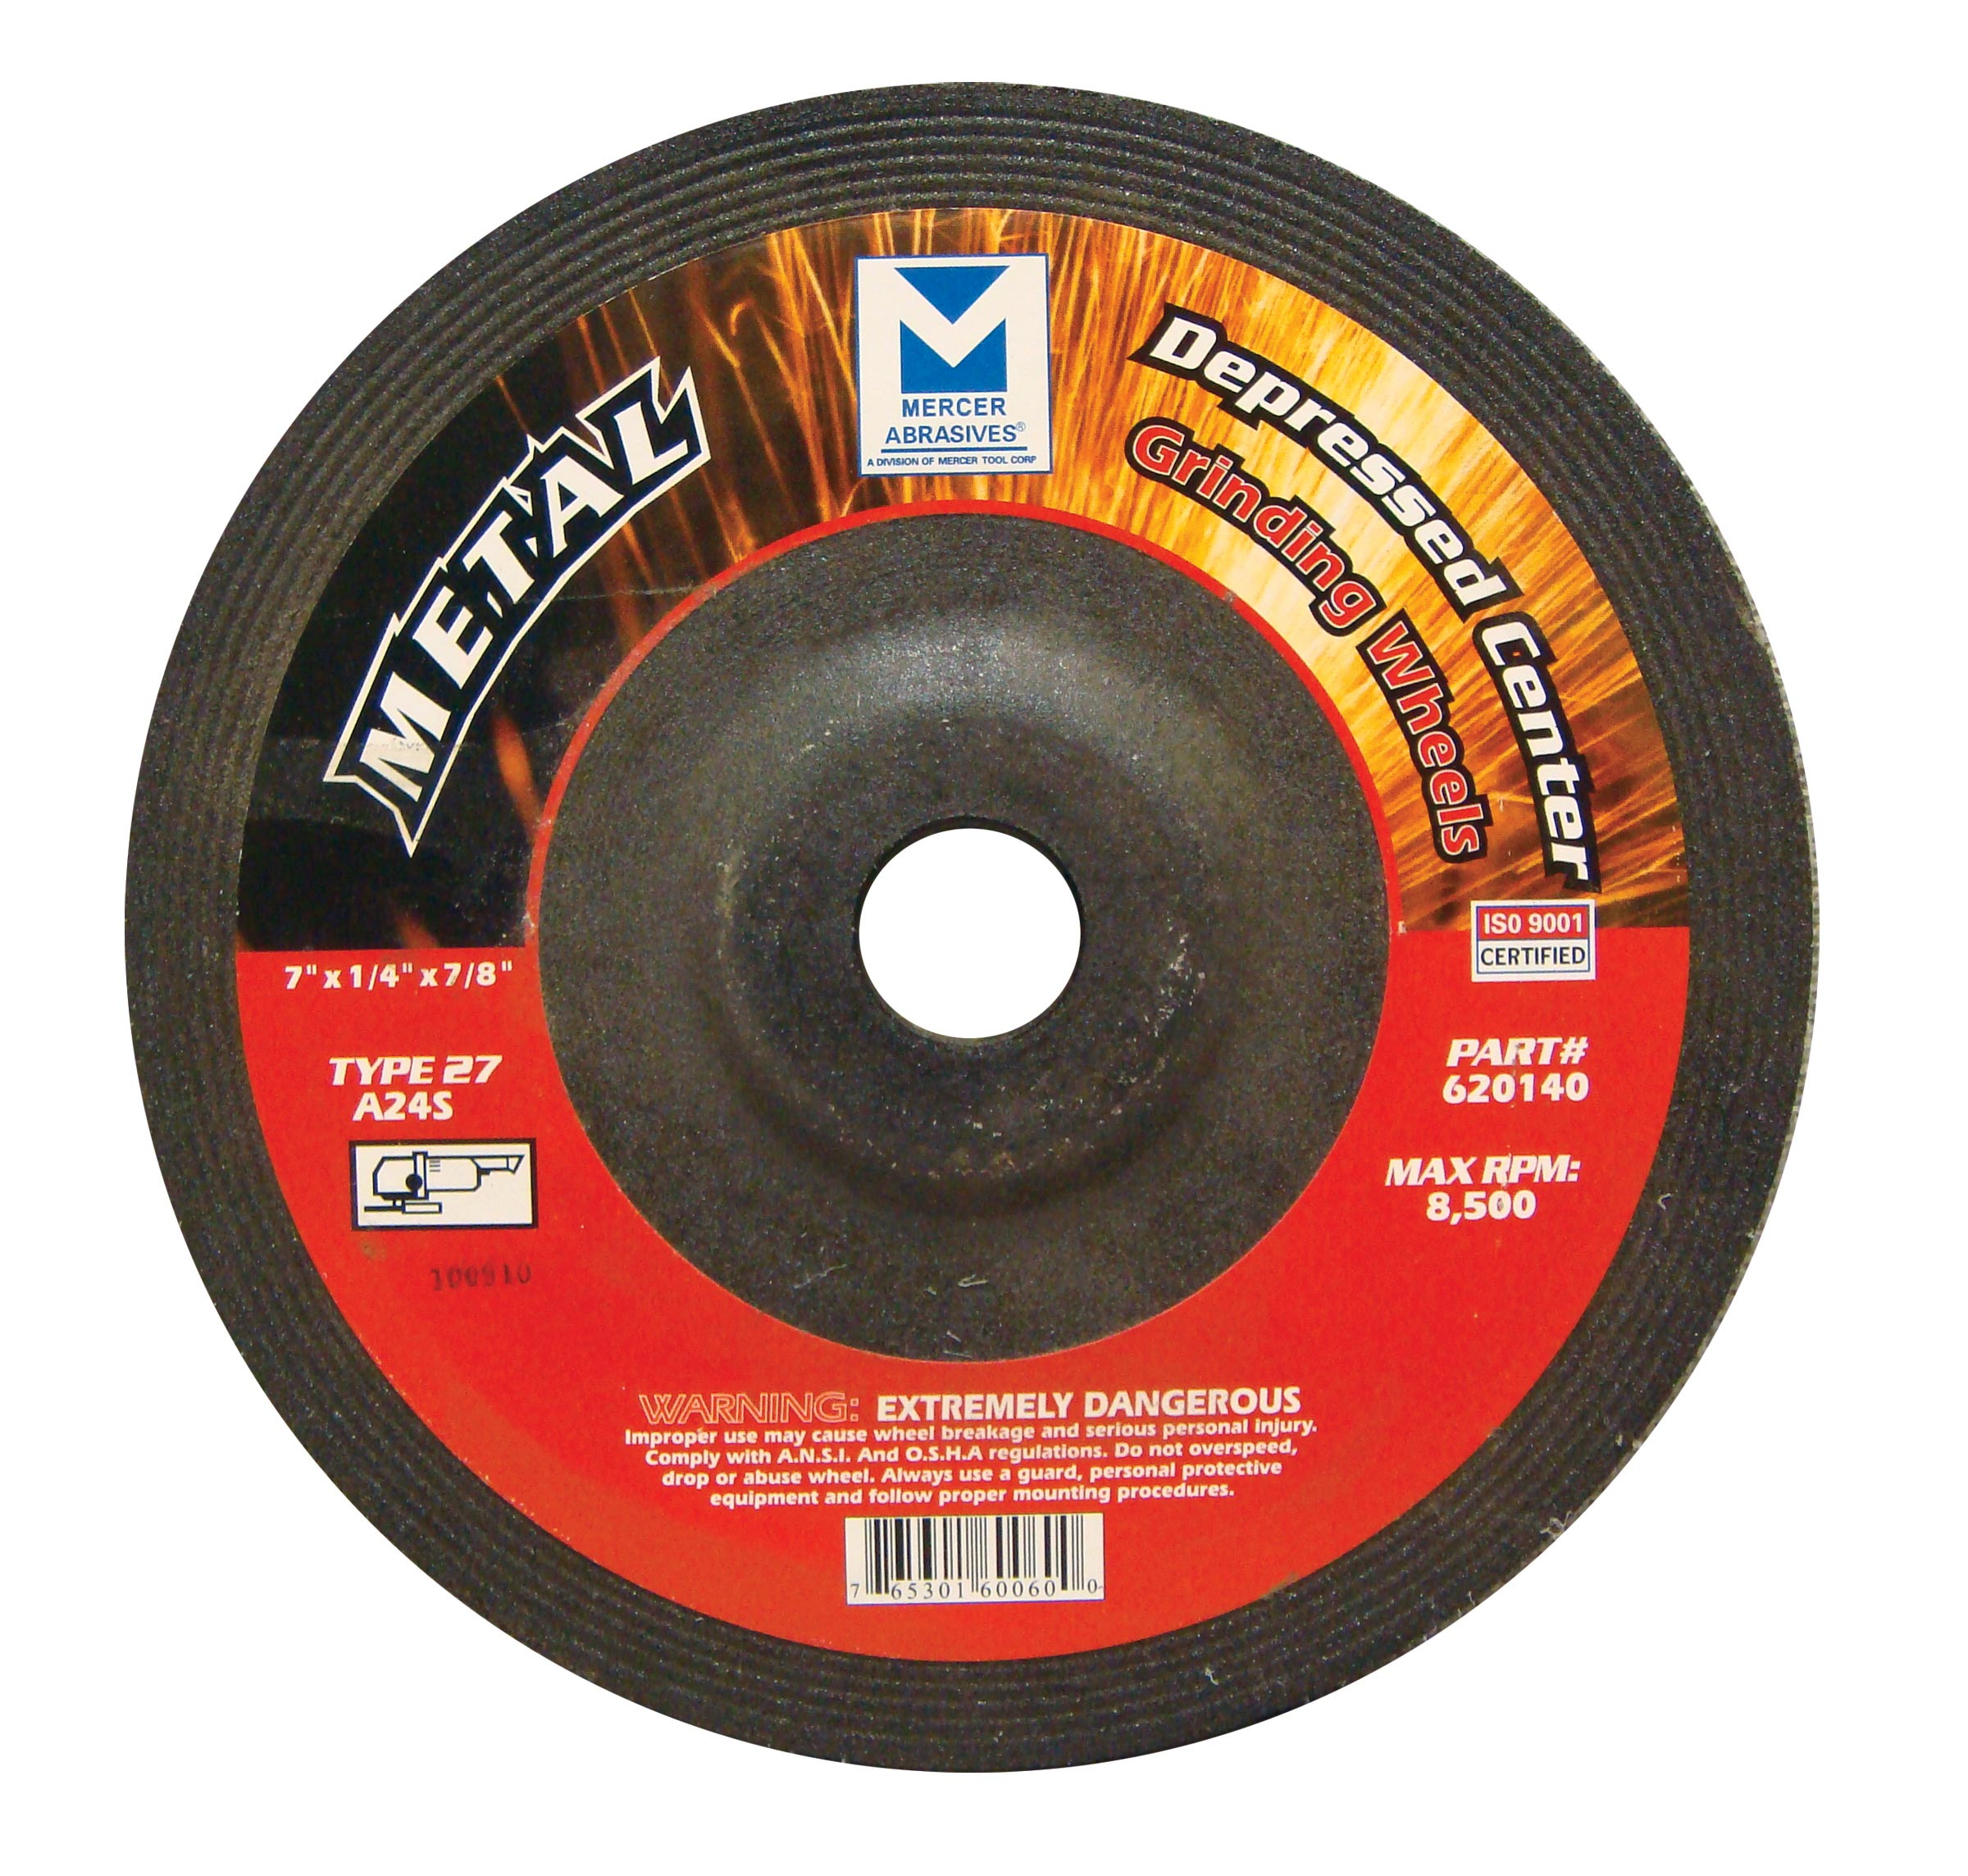 7 in x 1/4 in x 7/8 Grinding Wheel-20 Pack